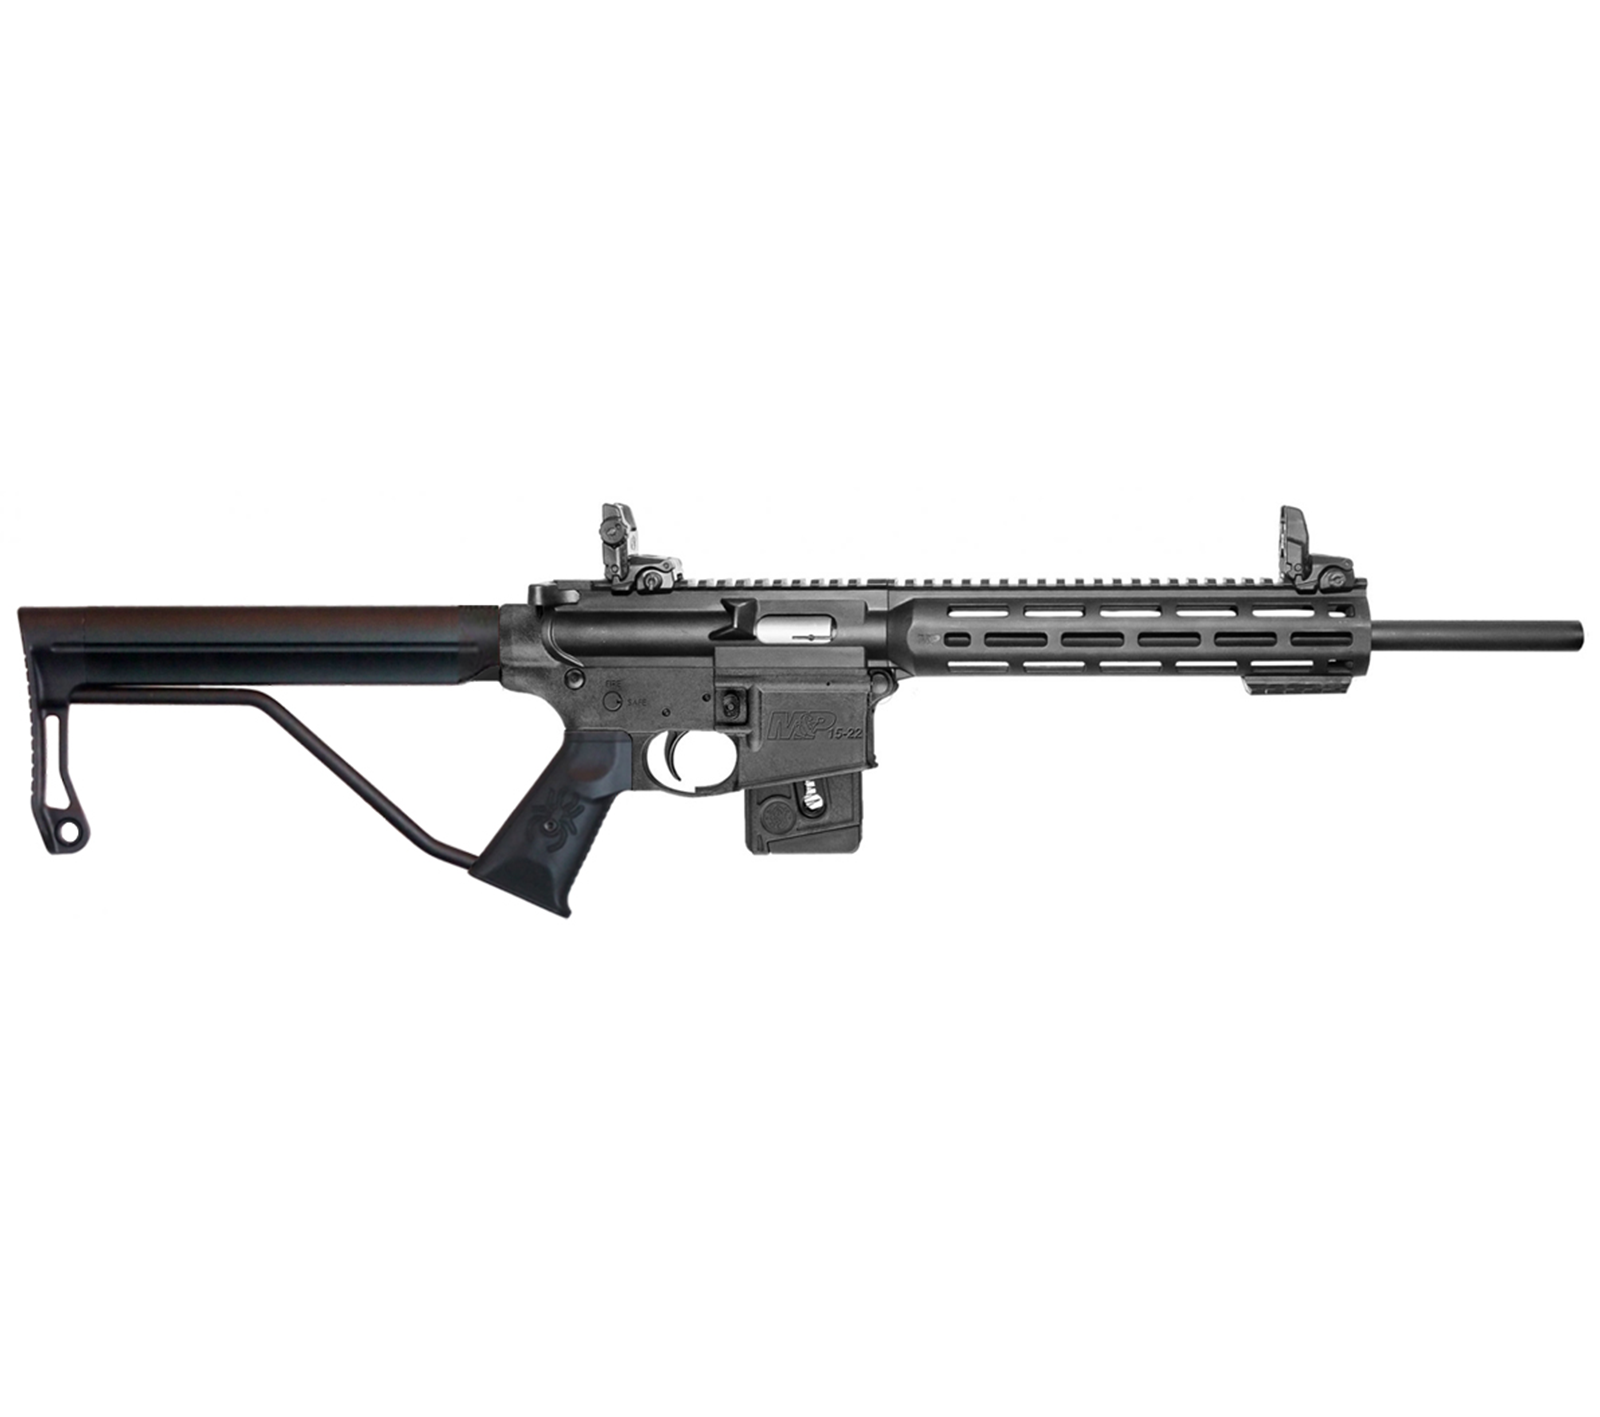 Smith & Wesson M&P 15-22 Sport Rifle | Wild Outdoorsman NZ